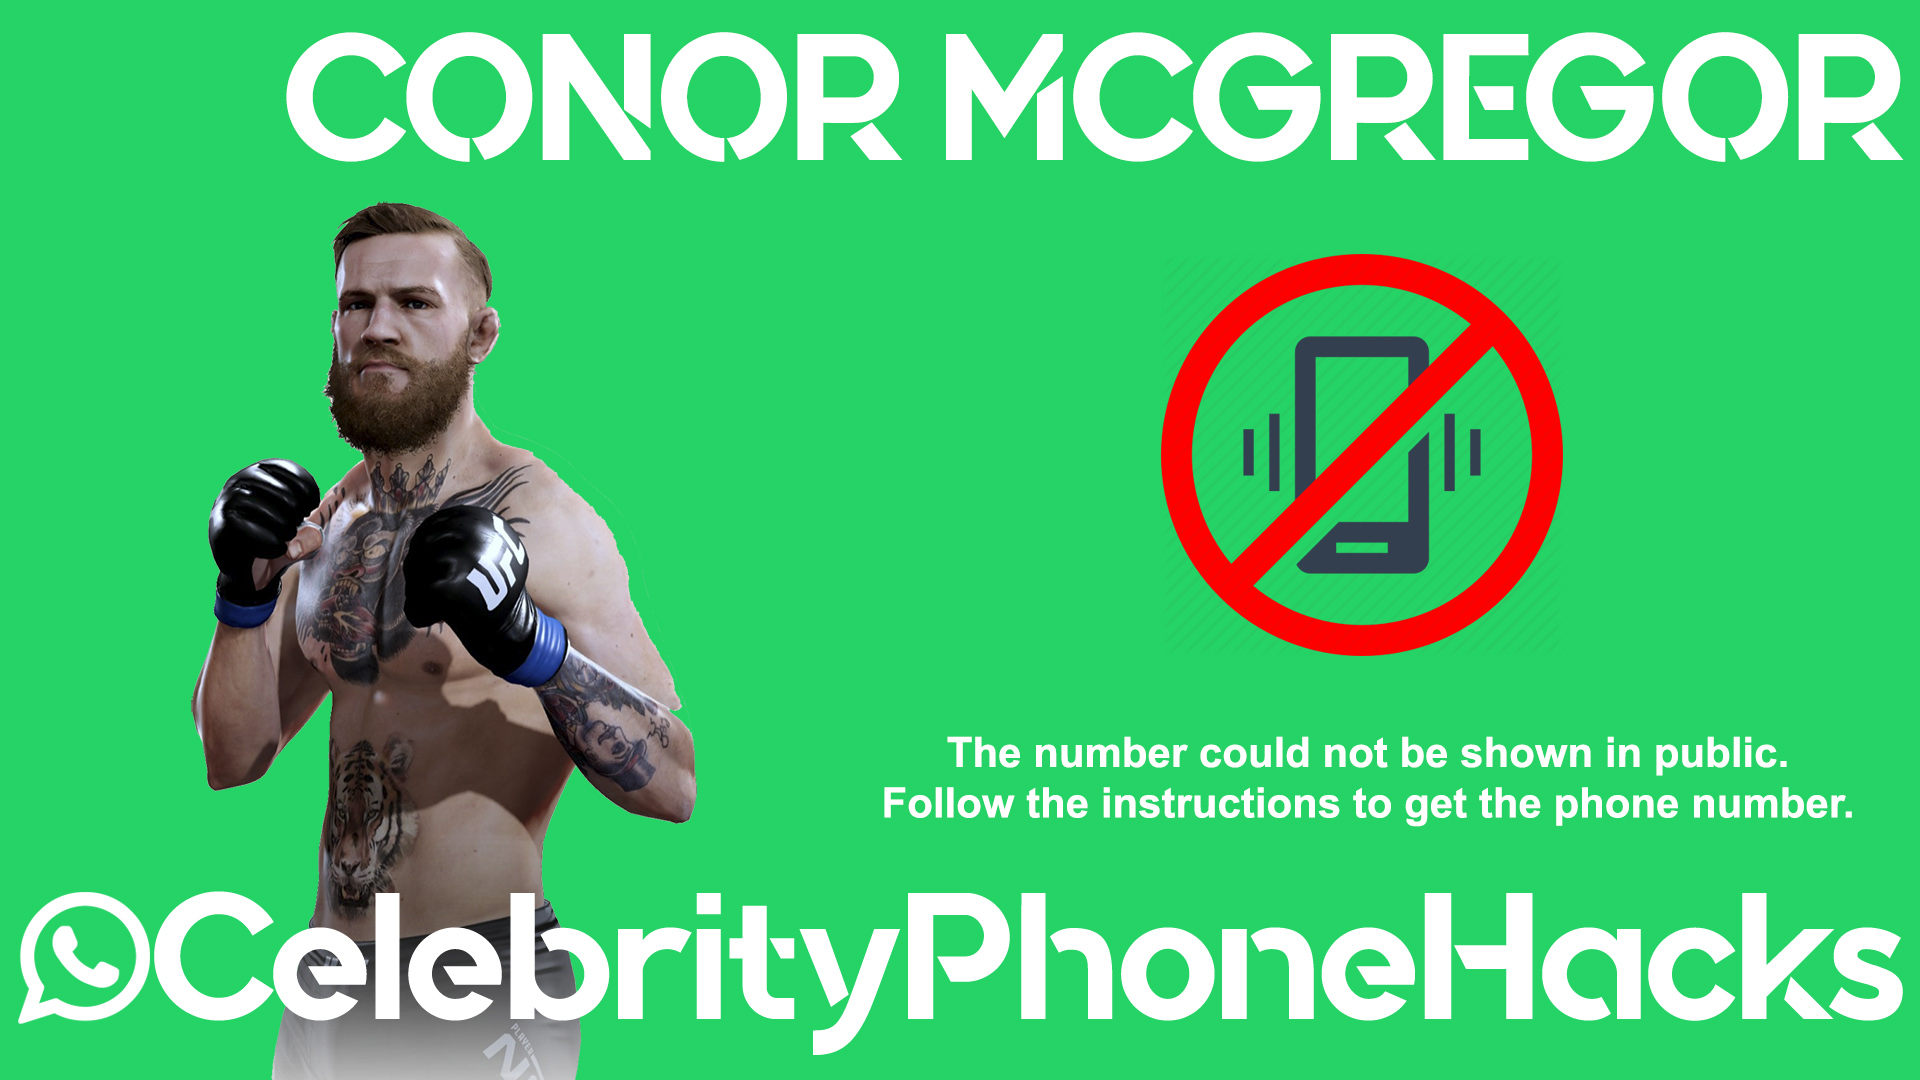 Conor McGregor real phone number 2019 whatsapp hacked leaked